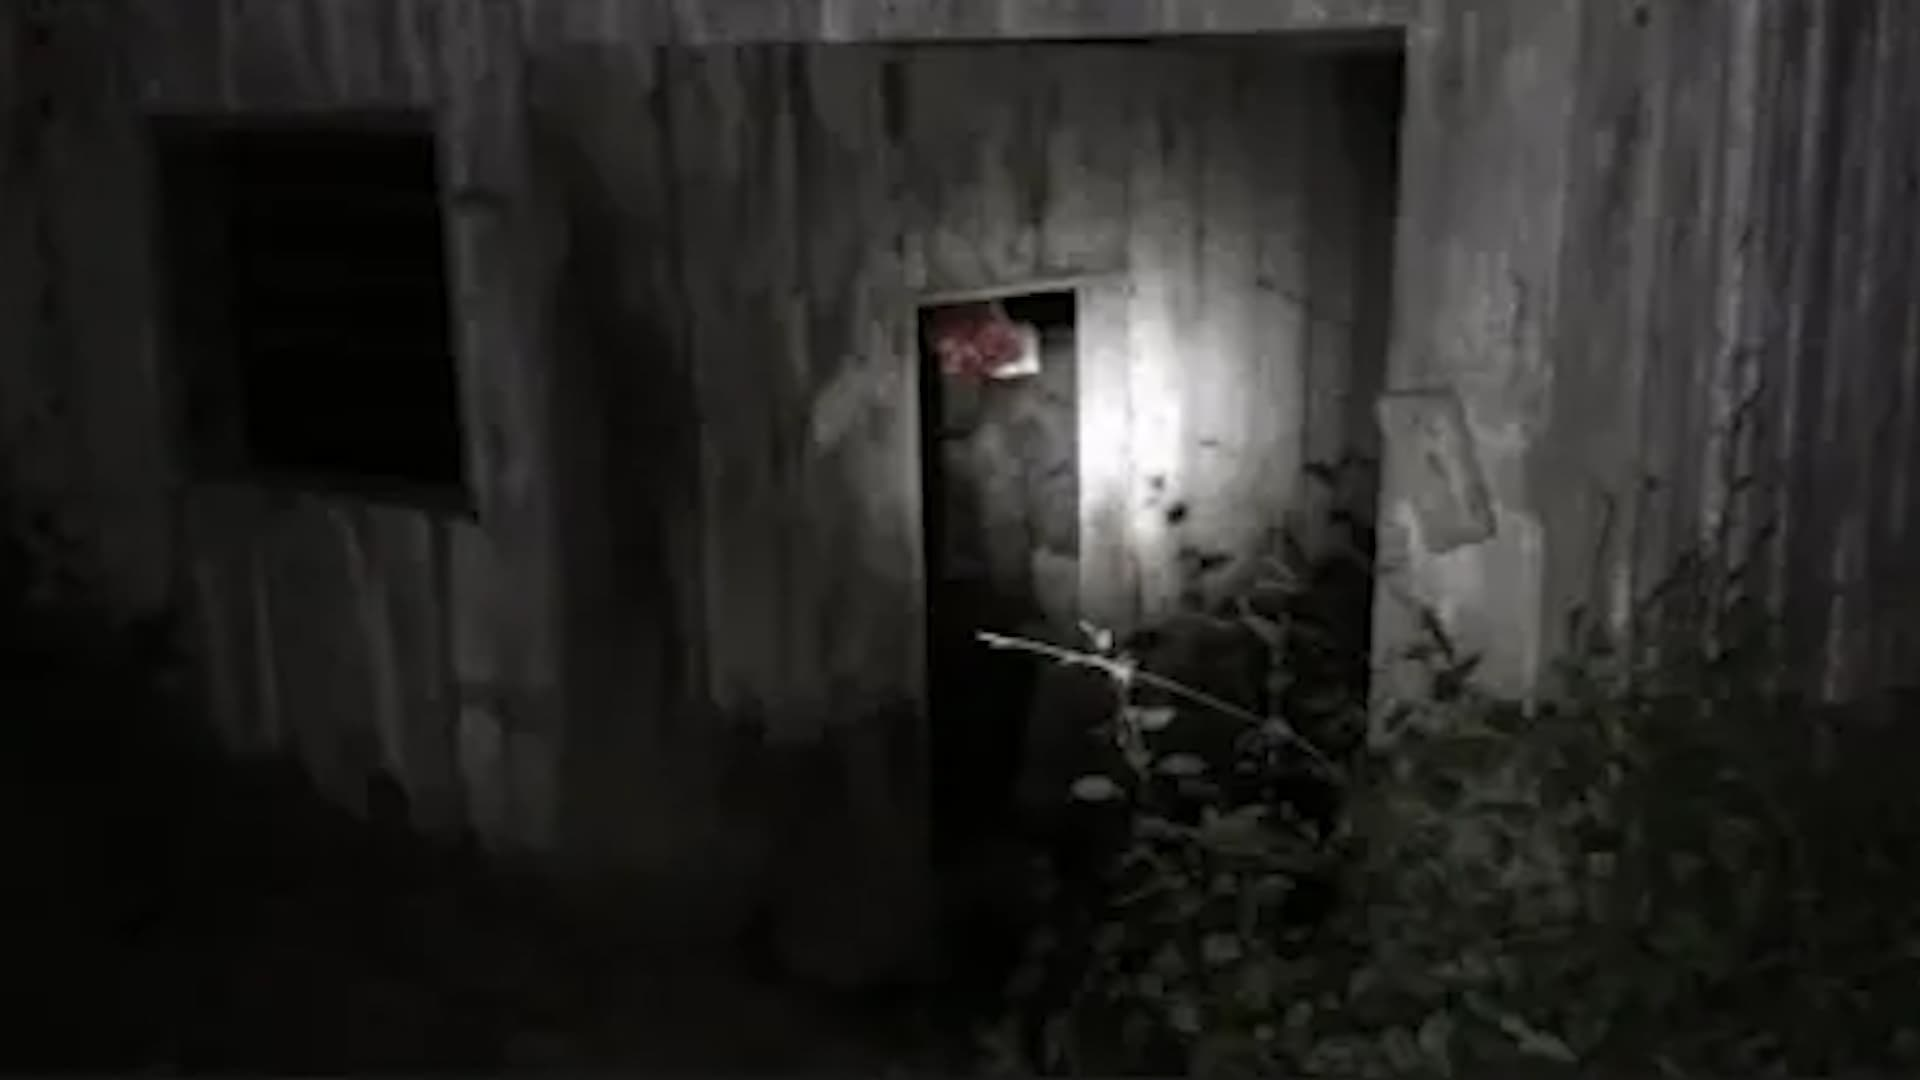 The Fear Footage 3AM